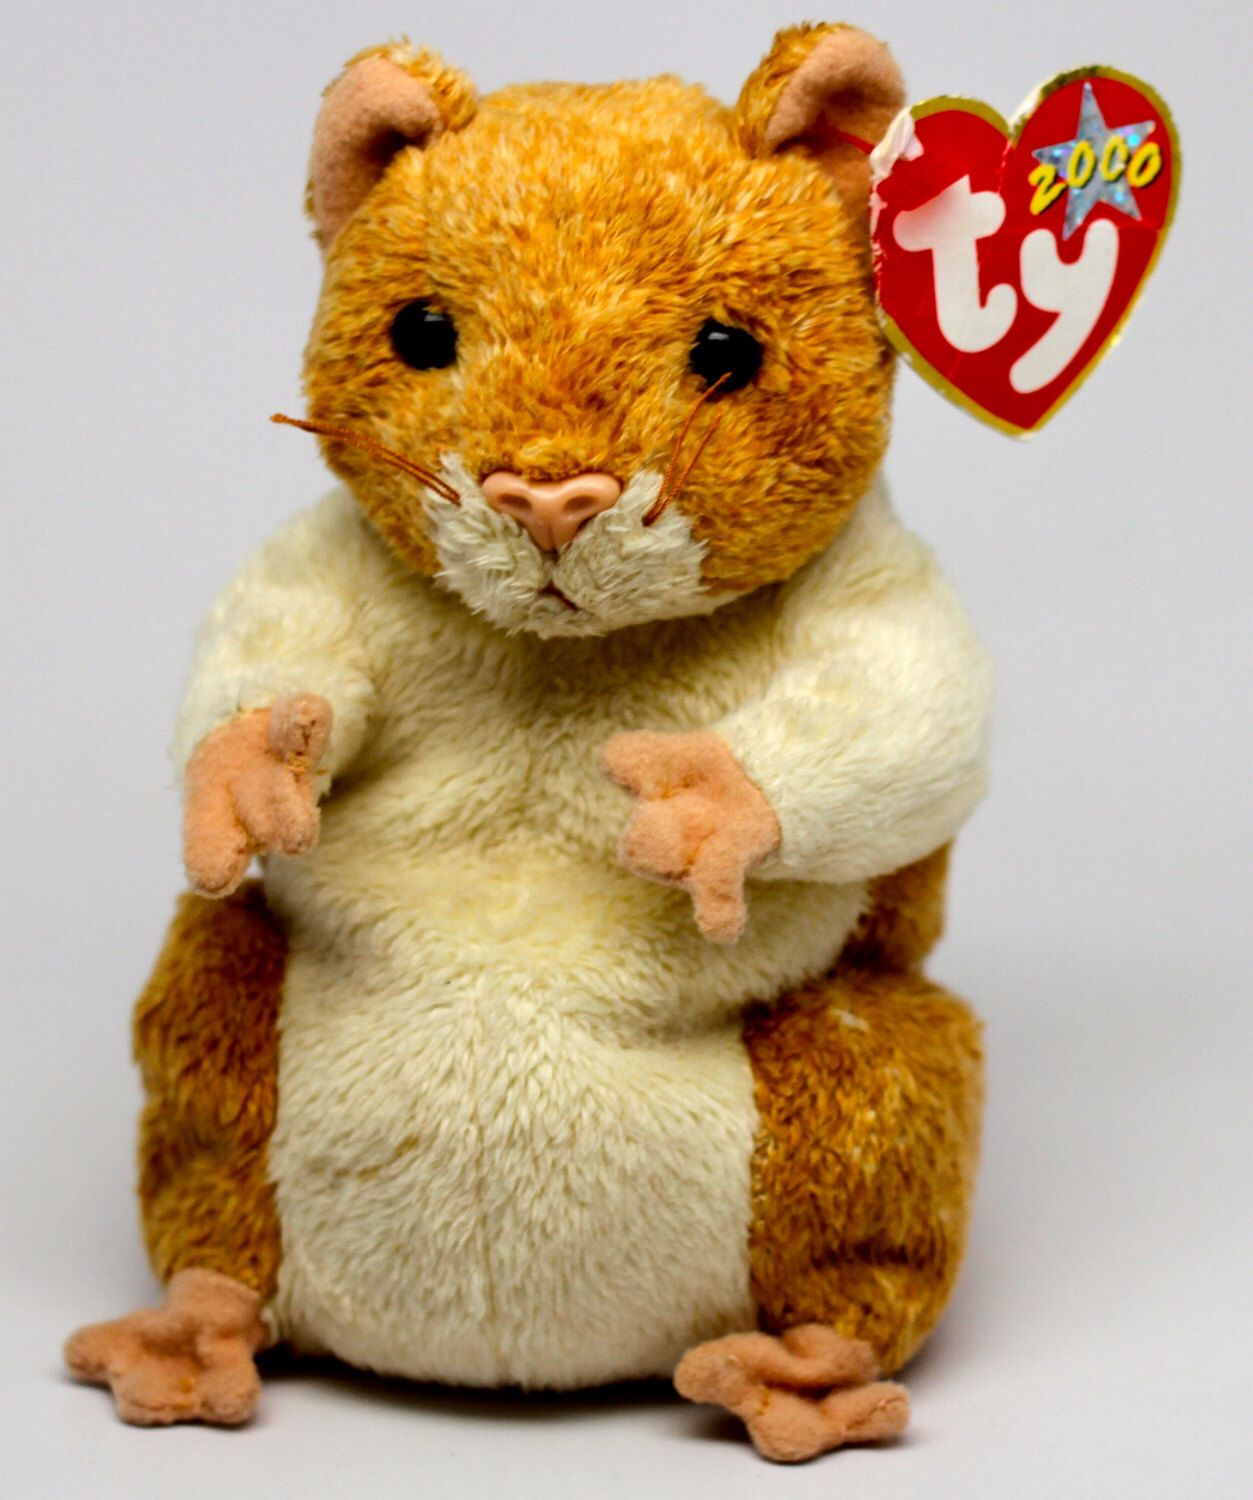 TY Beanie Baby Pellet the Hamster 7cac16e9f19